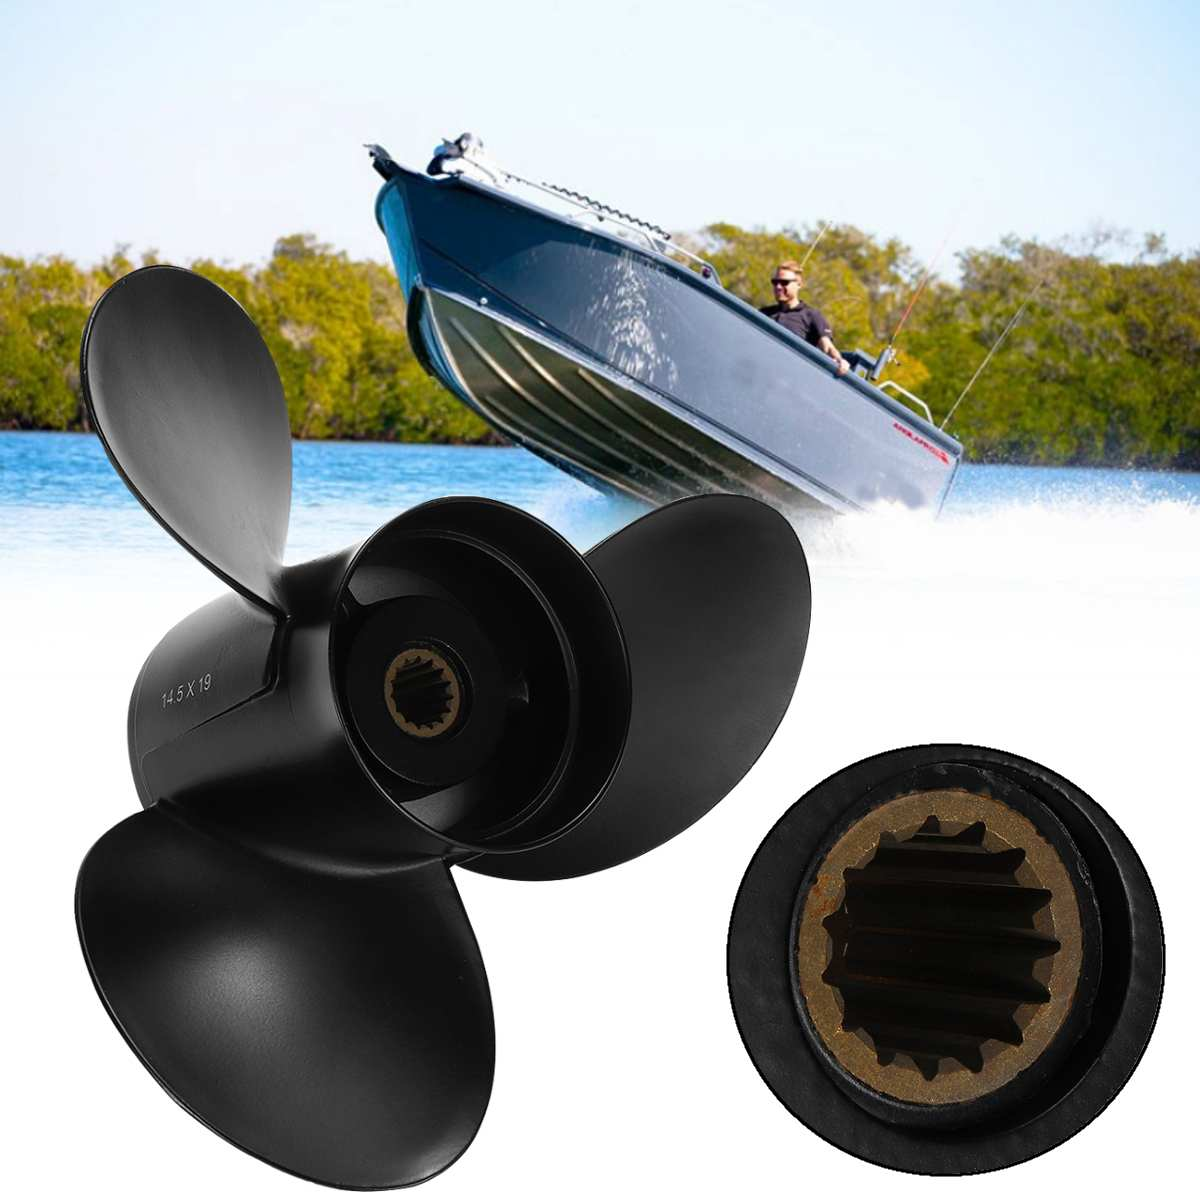 48-832830A45 Aluminium Alloy 14 1/2 x 19 Boat Outboard Propeller For Mercury Mariner 135-300HP Black 15 Spline Tooth 3 Blades48-832830A45 Aluminium Alloy 14 1/2 x 19 Boat Outboard Propeller For Mercury Mariner 135-300HP Black 15 Spline Tooth 3 Blades